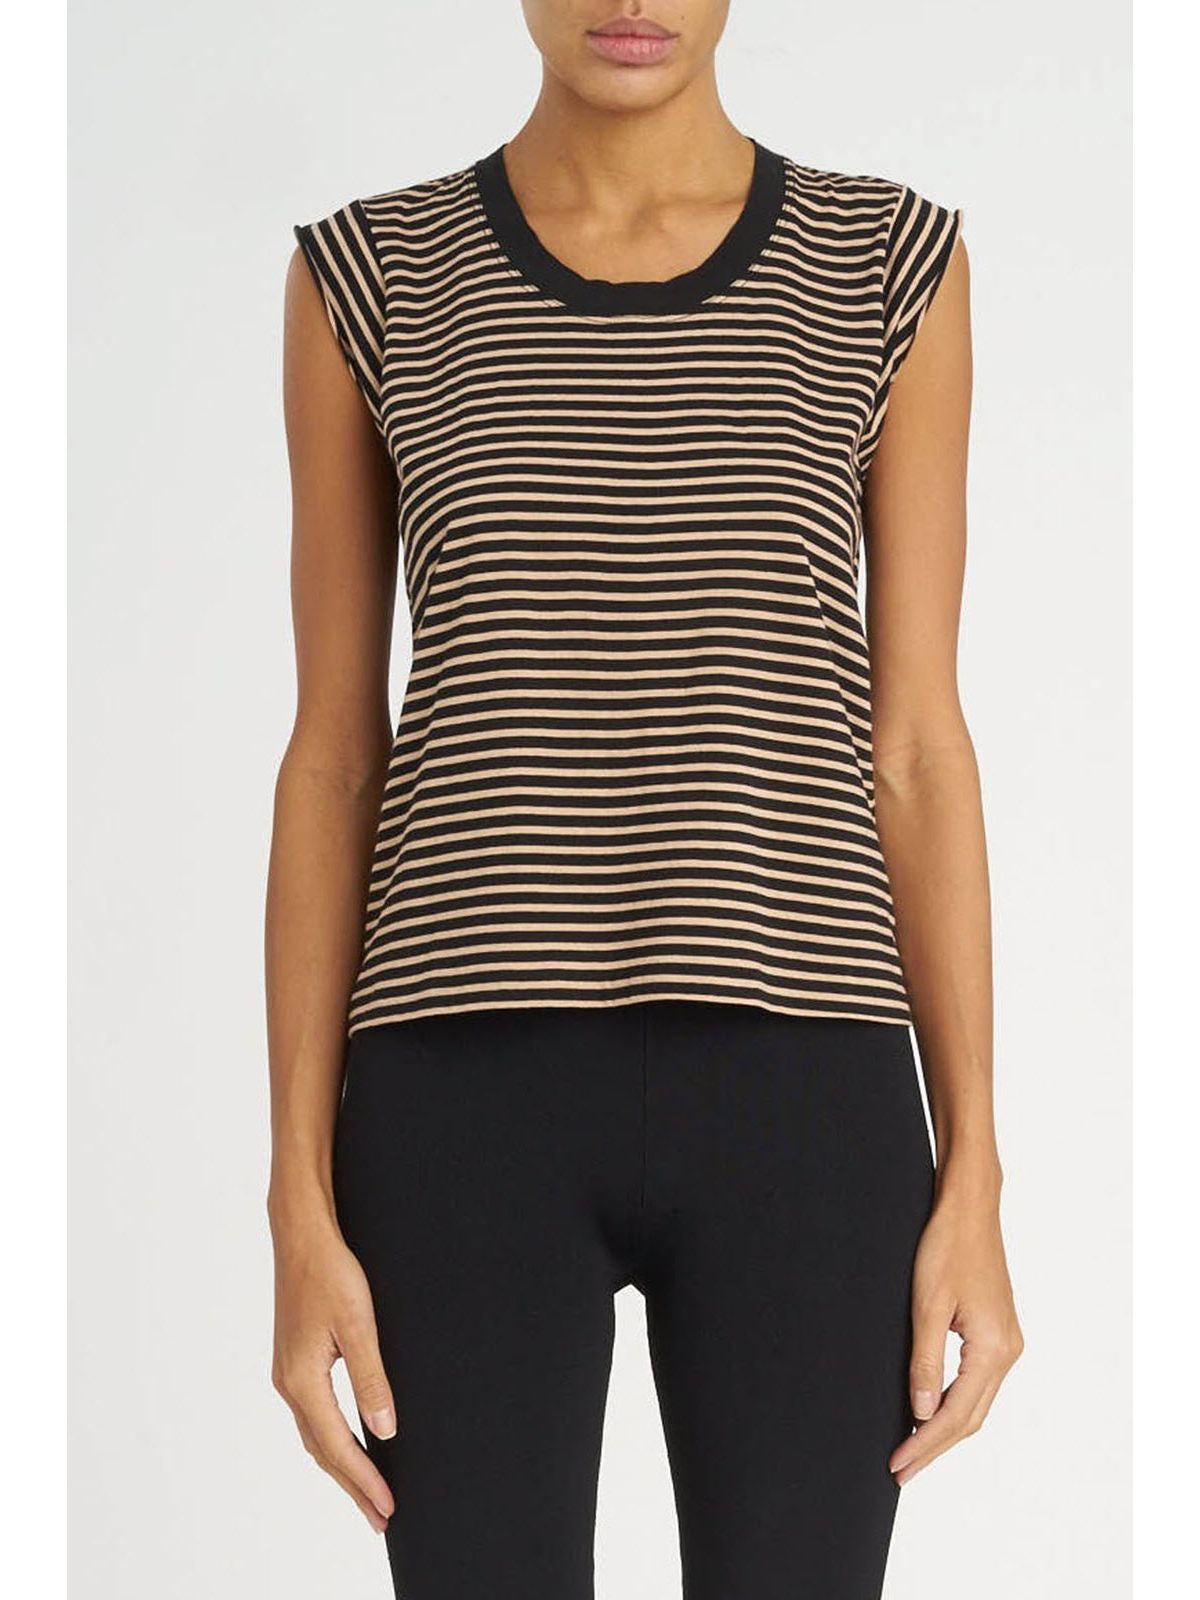 T by Alexander Wang striped muscle tee with distressed rib